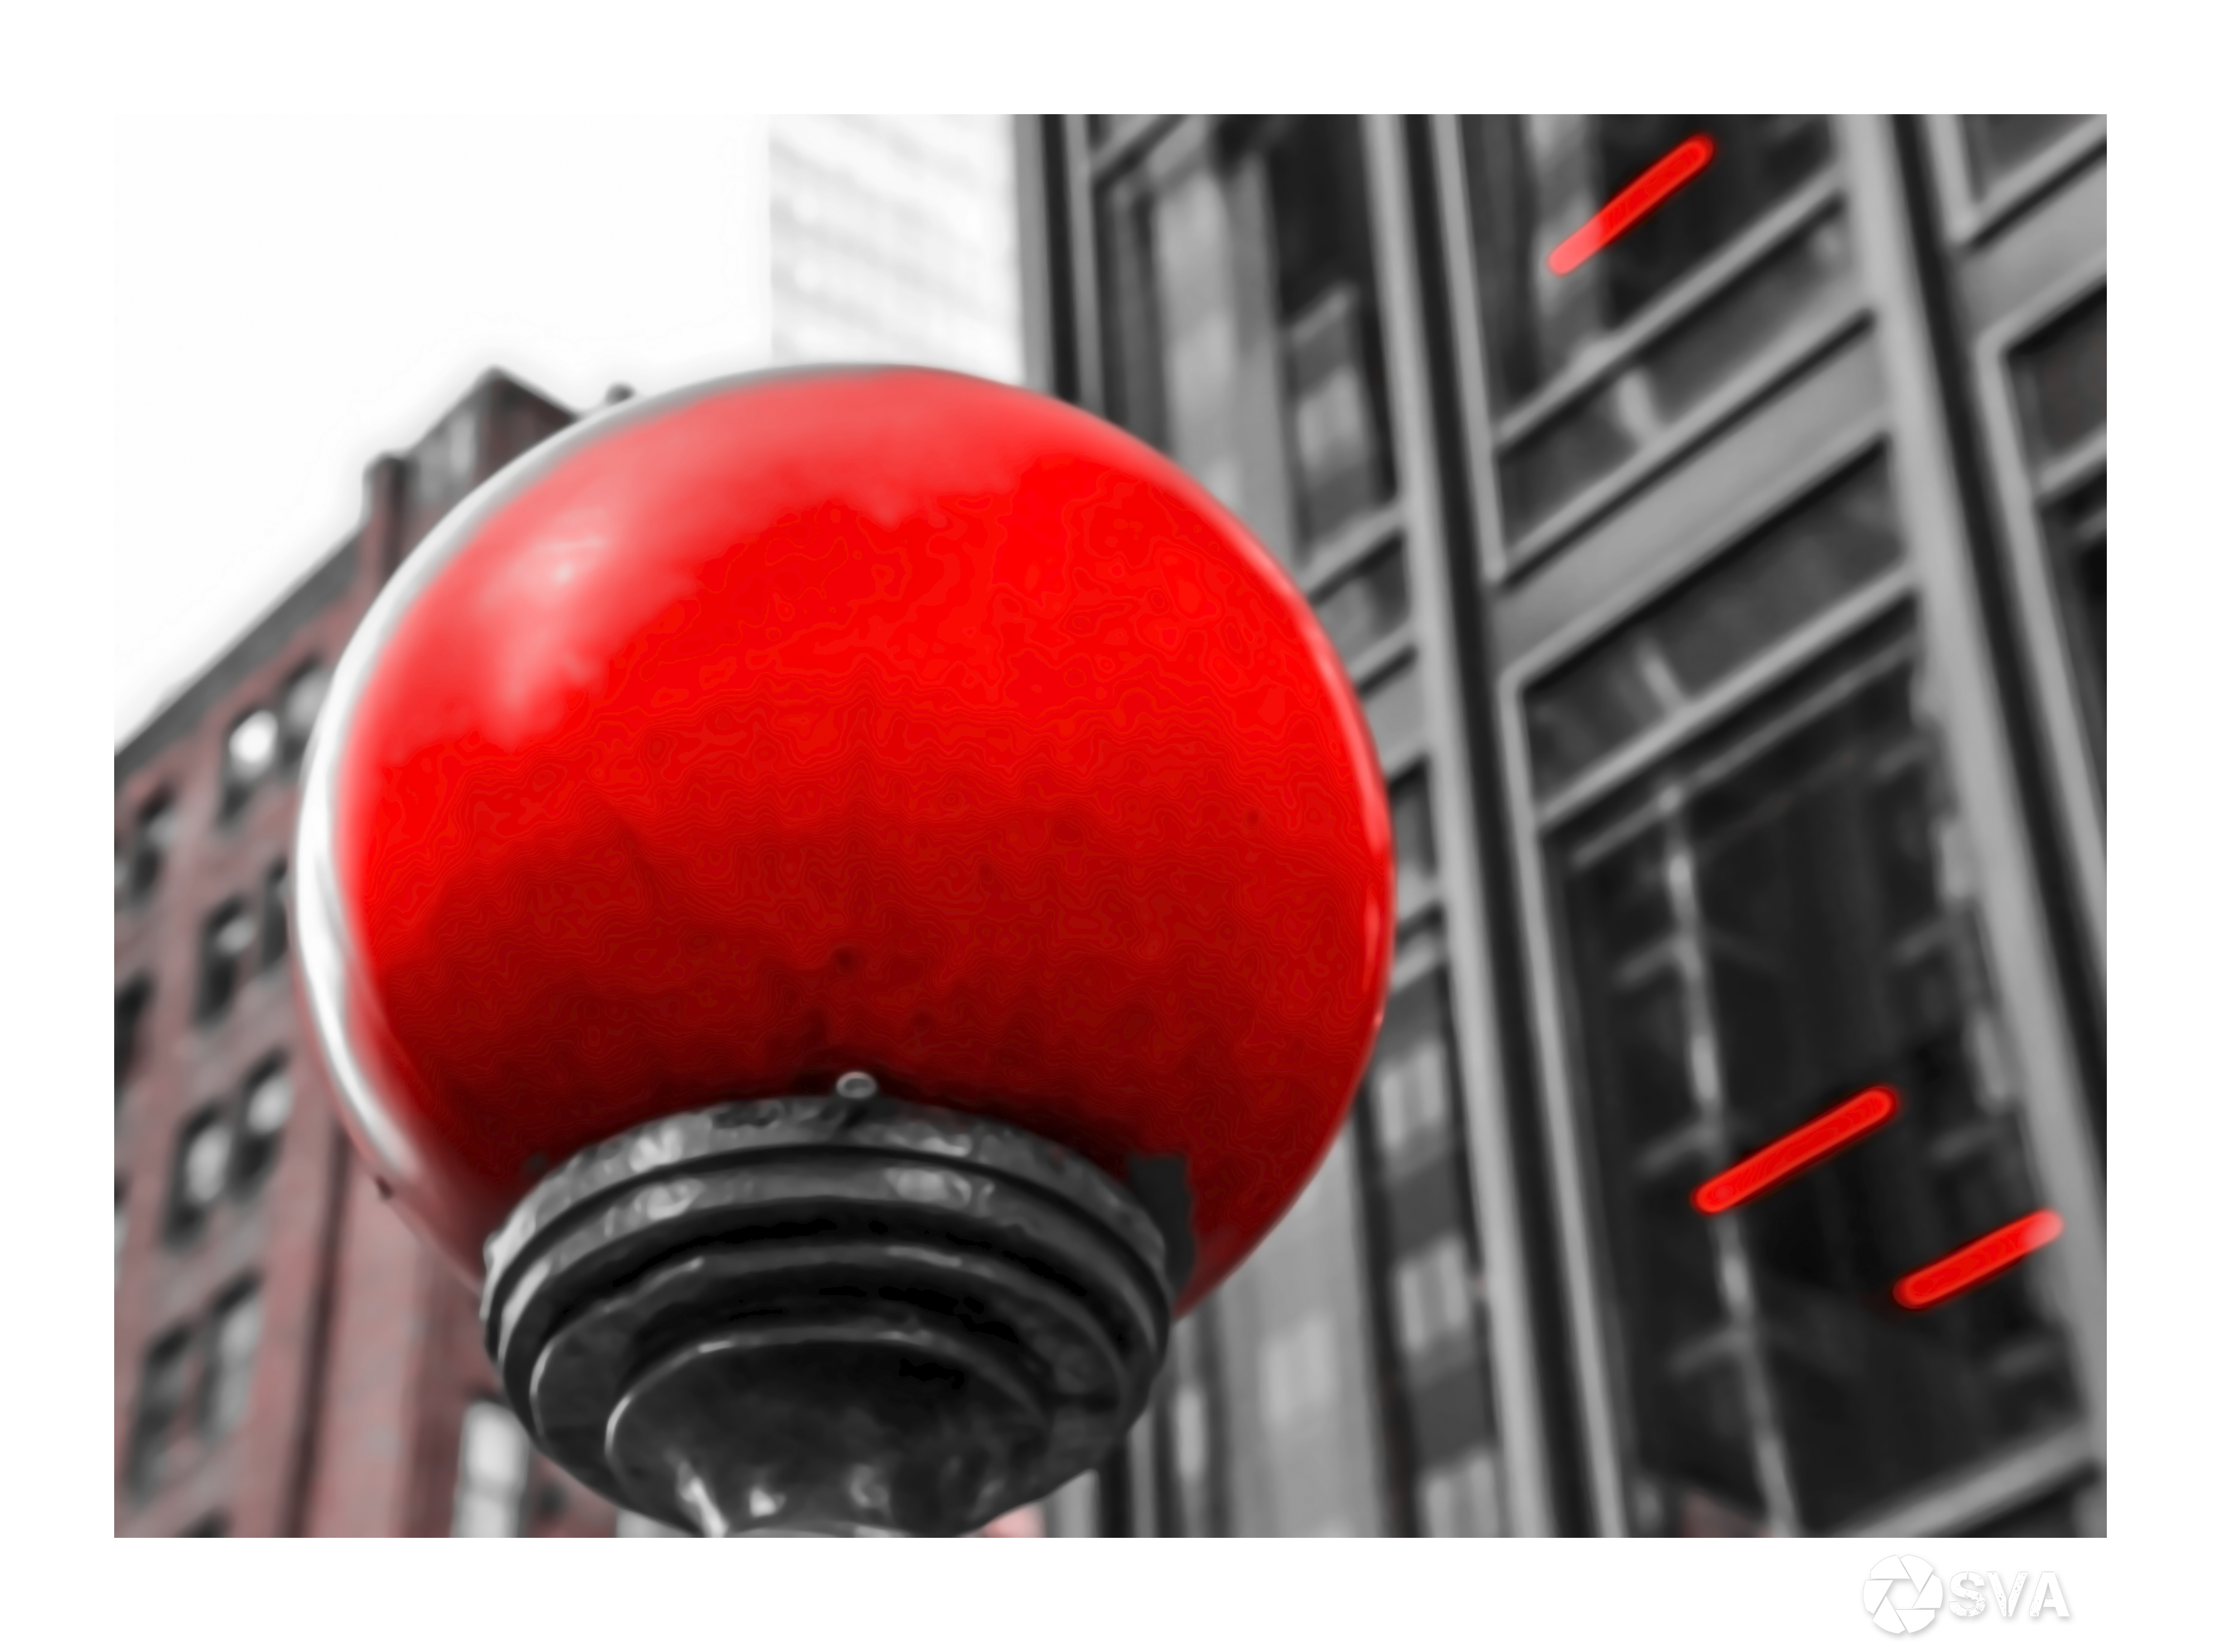 WDILNY_Day 6_red